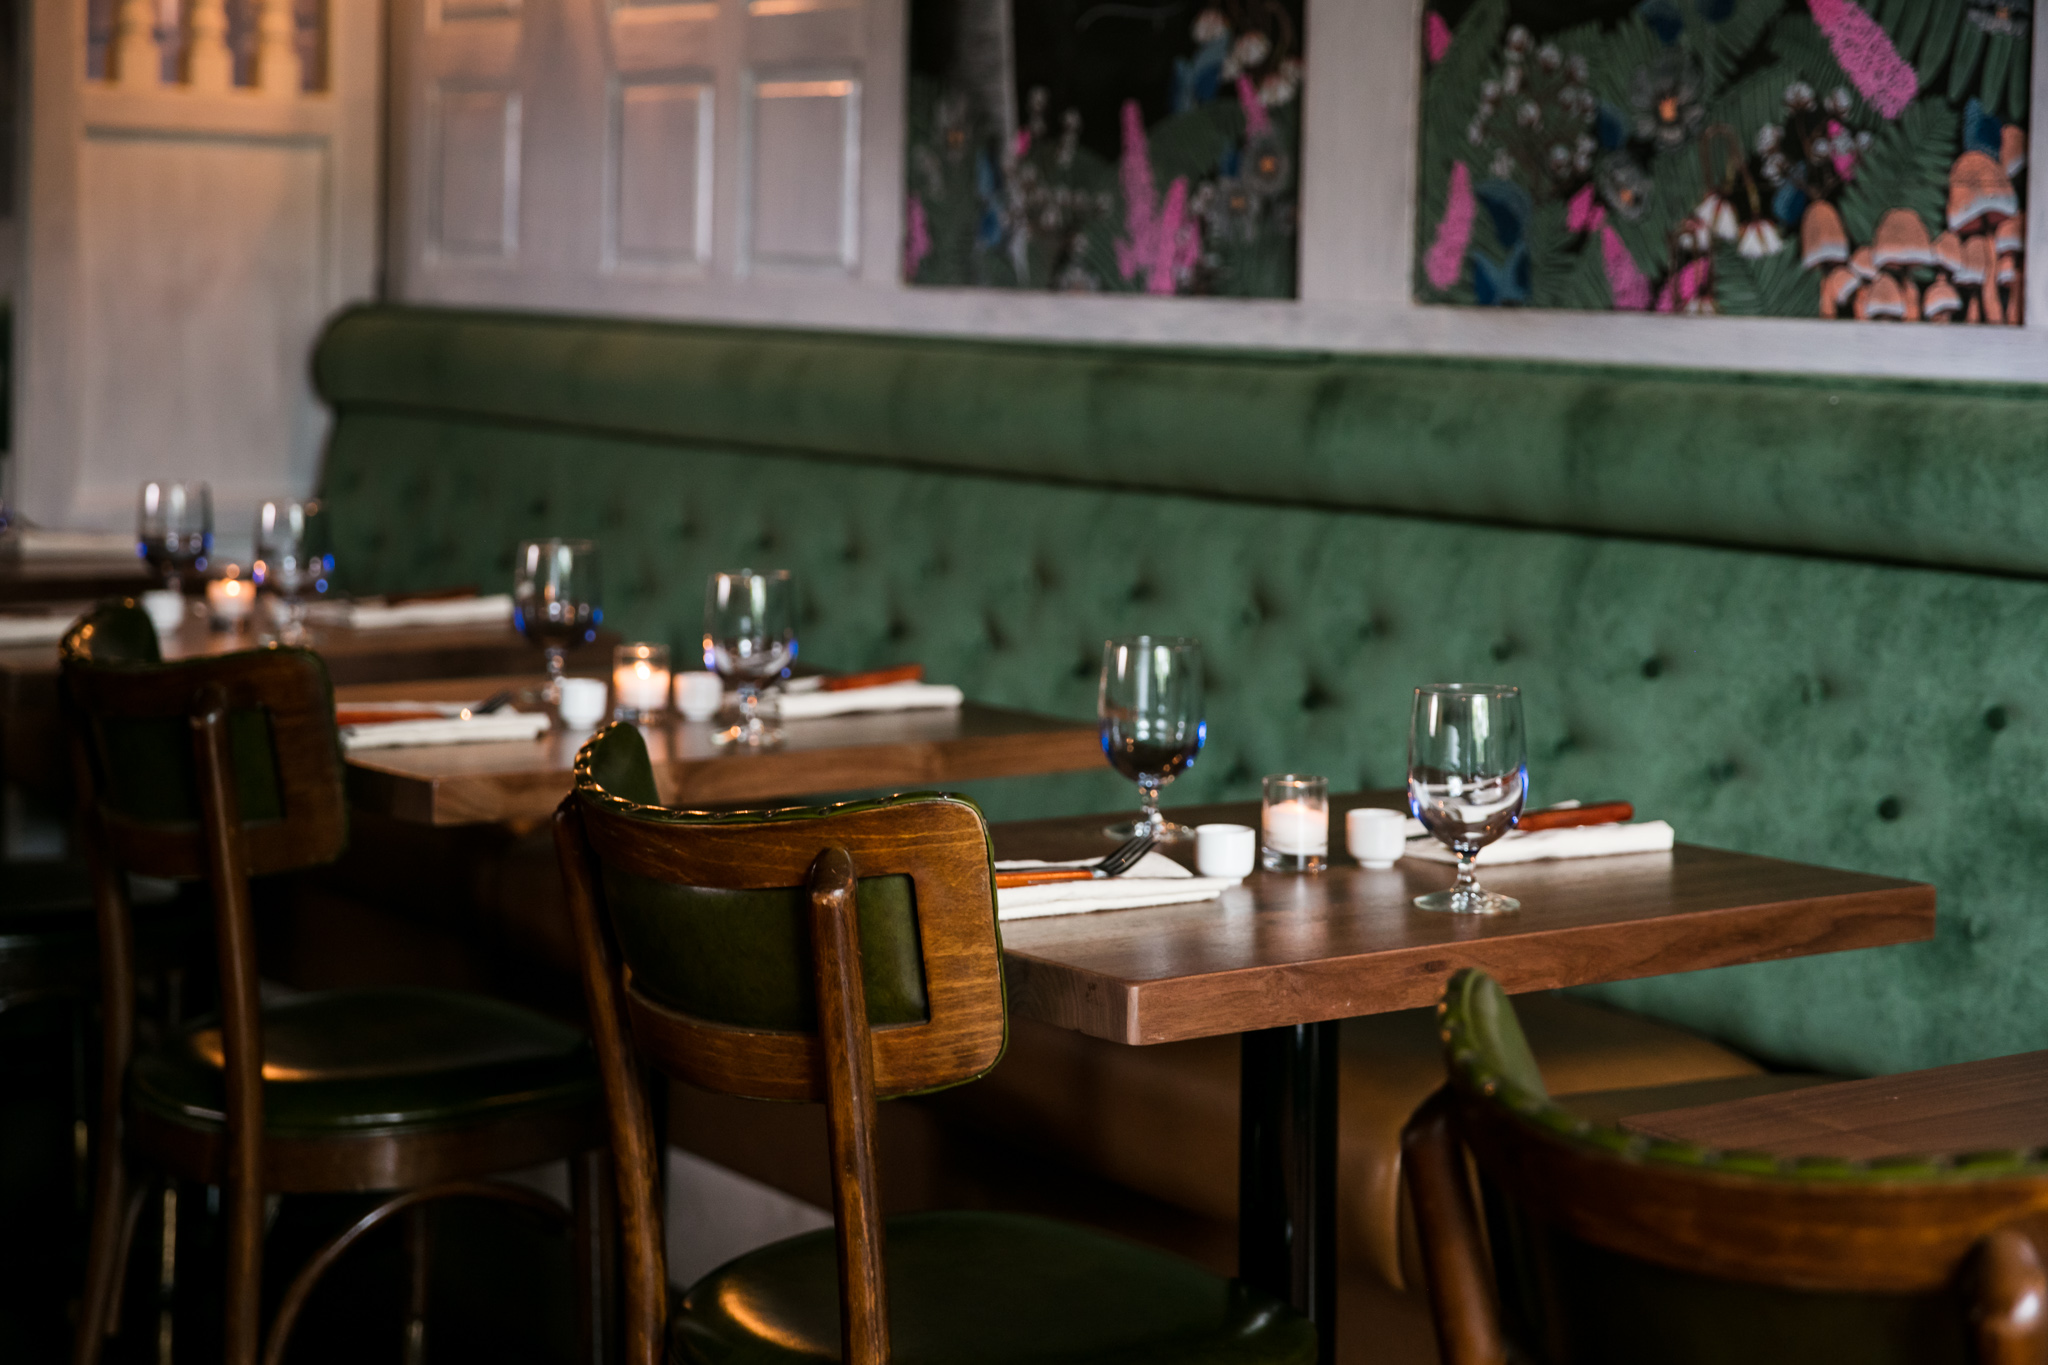 Green fabric upholstered booths next to a wood table with wood chairs and table settings at Lady of the House.